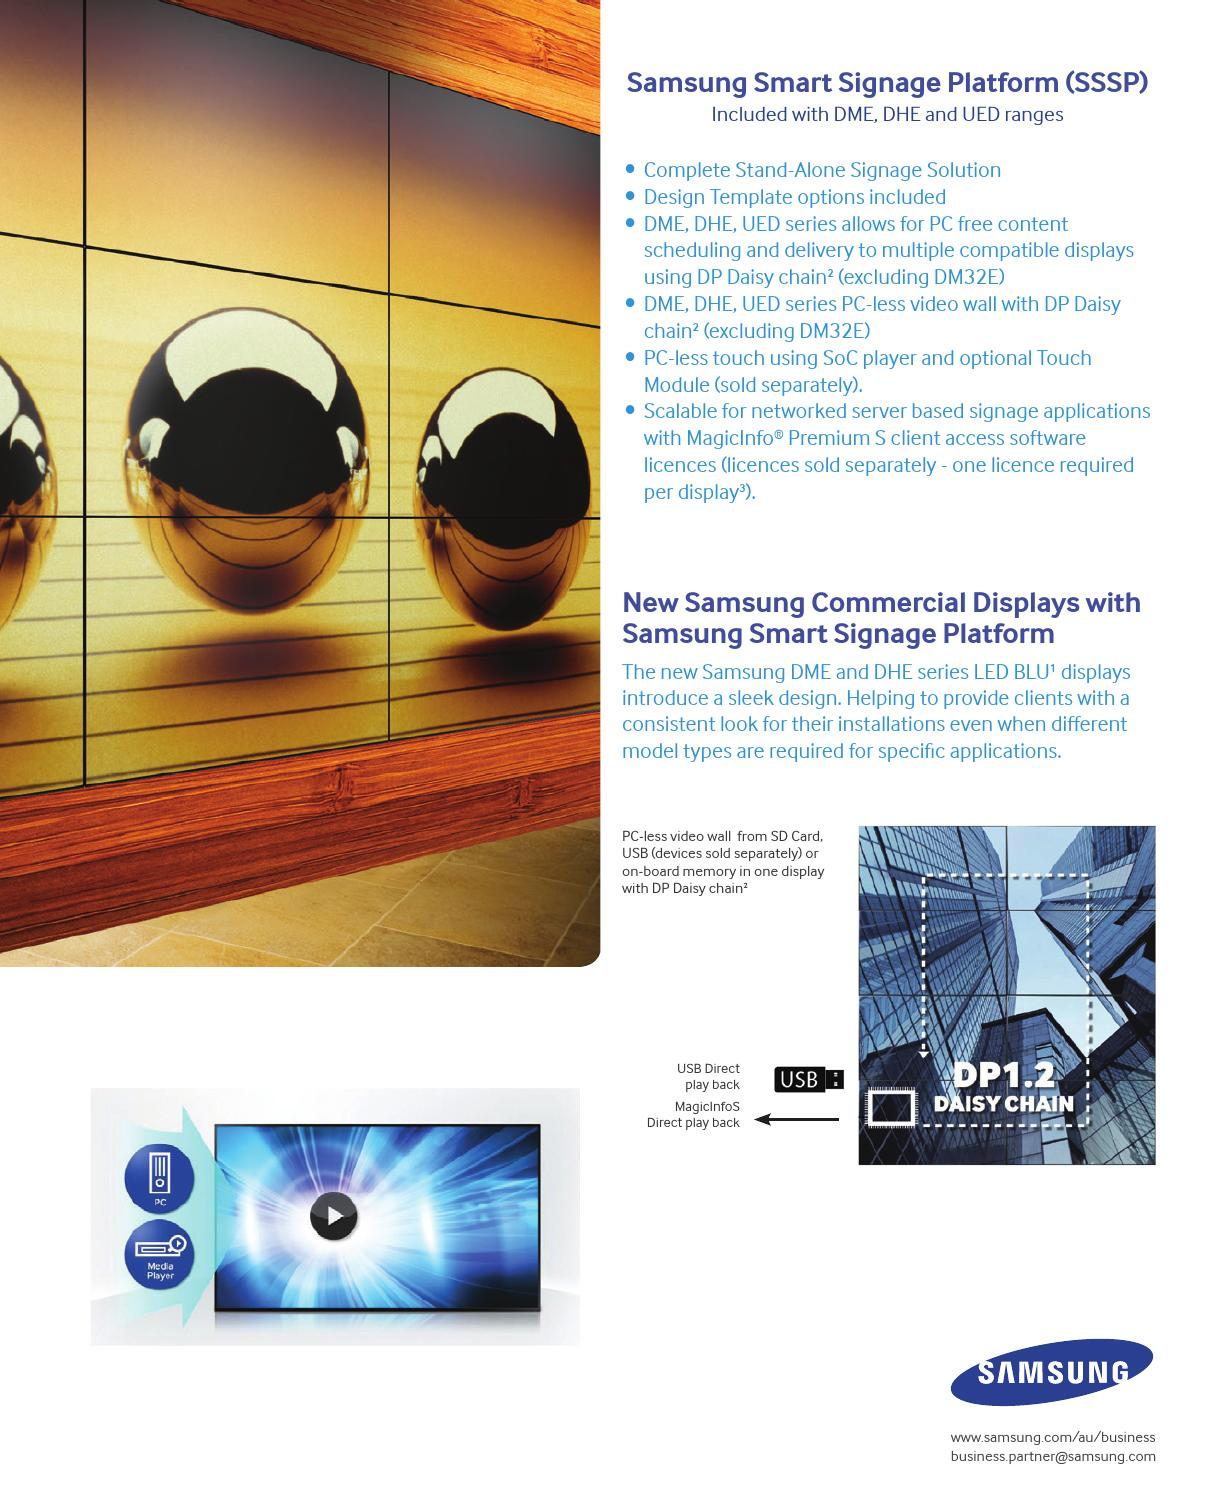 Av asia pacific magazine the new samsung smart signage platform av - Av Asia Pacific Magazine The New Samsung Smart Signage Platform Av 2